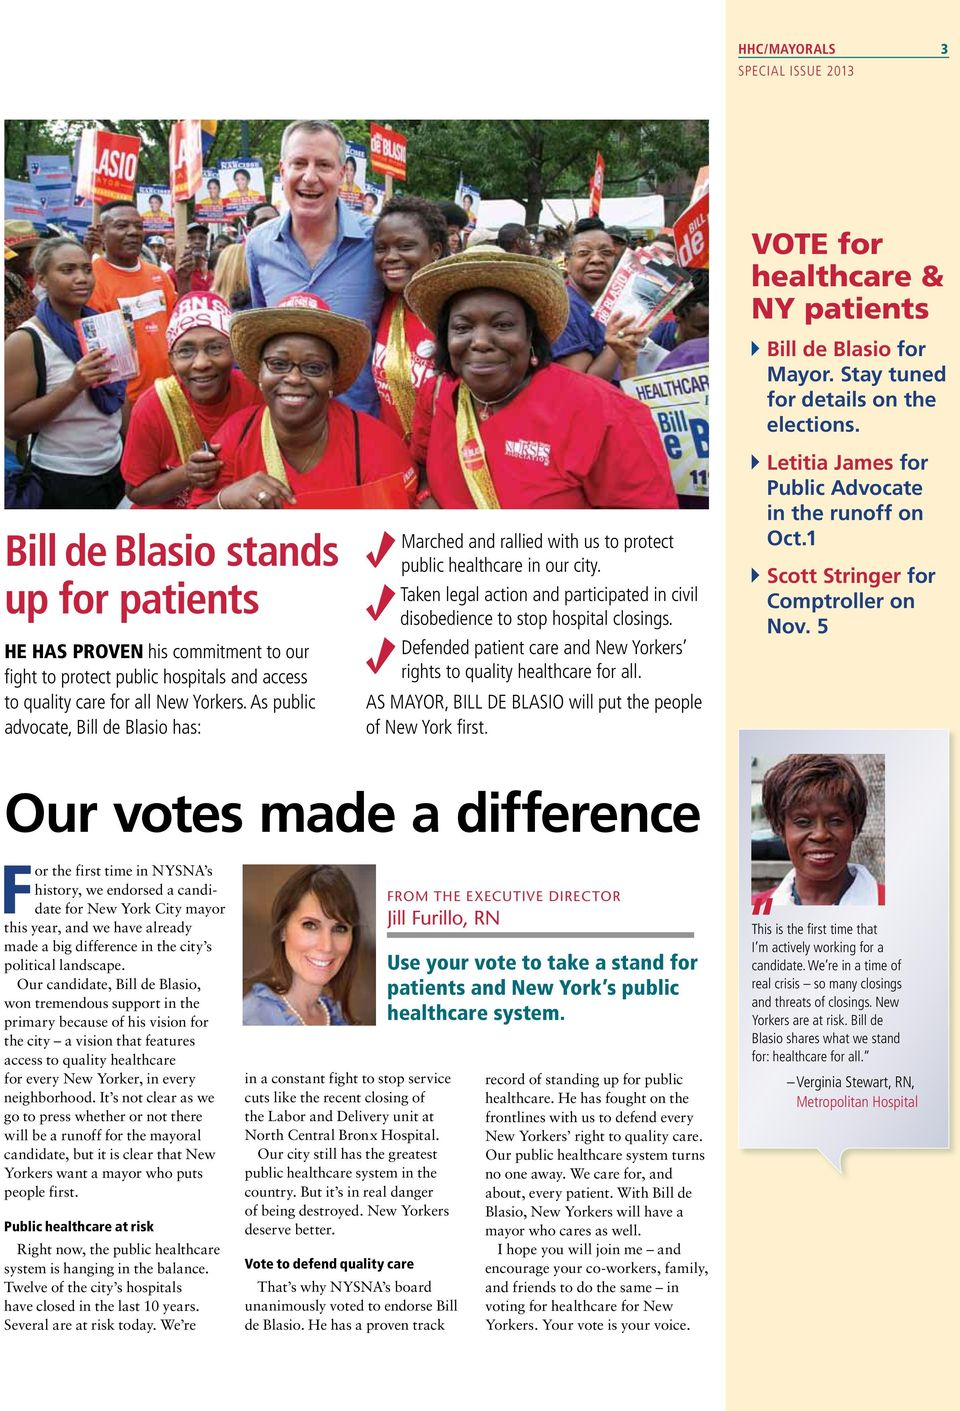 Defended patient care and New Yorkers rights to quality healthcare for all. As mayor, Bill de Blasio will put the people of New York first. VOTE for healthcare & NY patients 4Bill de Blasio for Mayor.